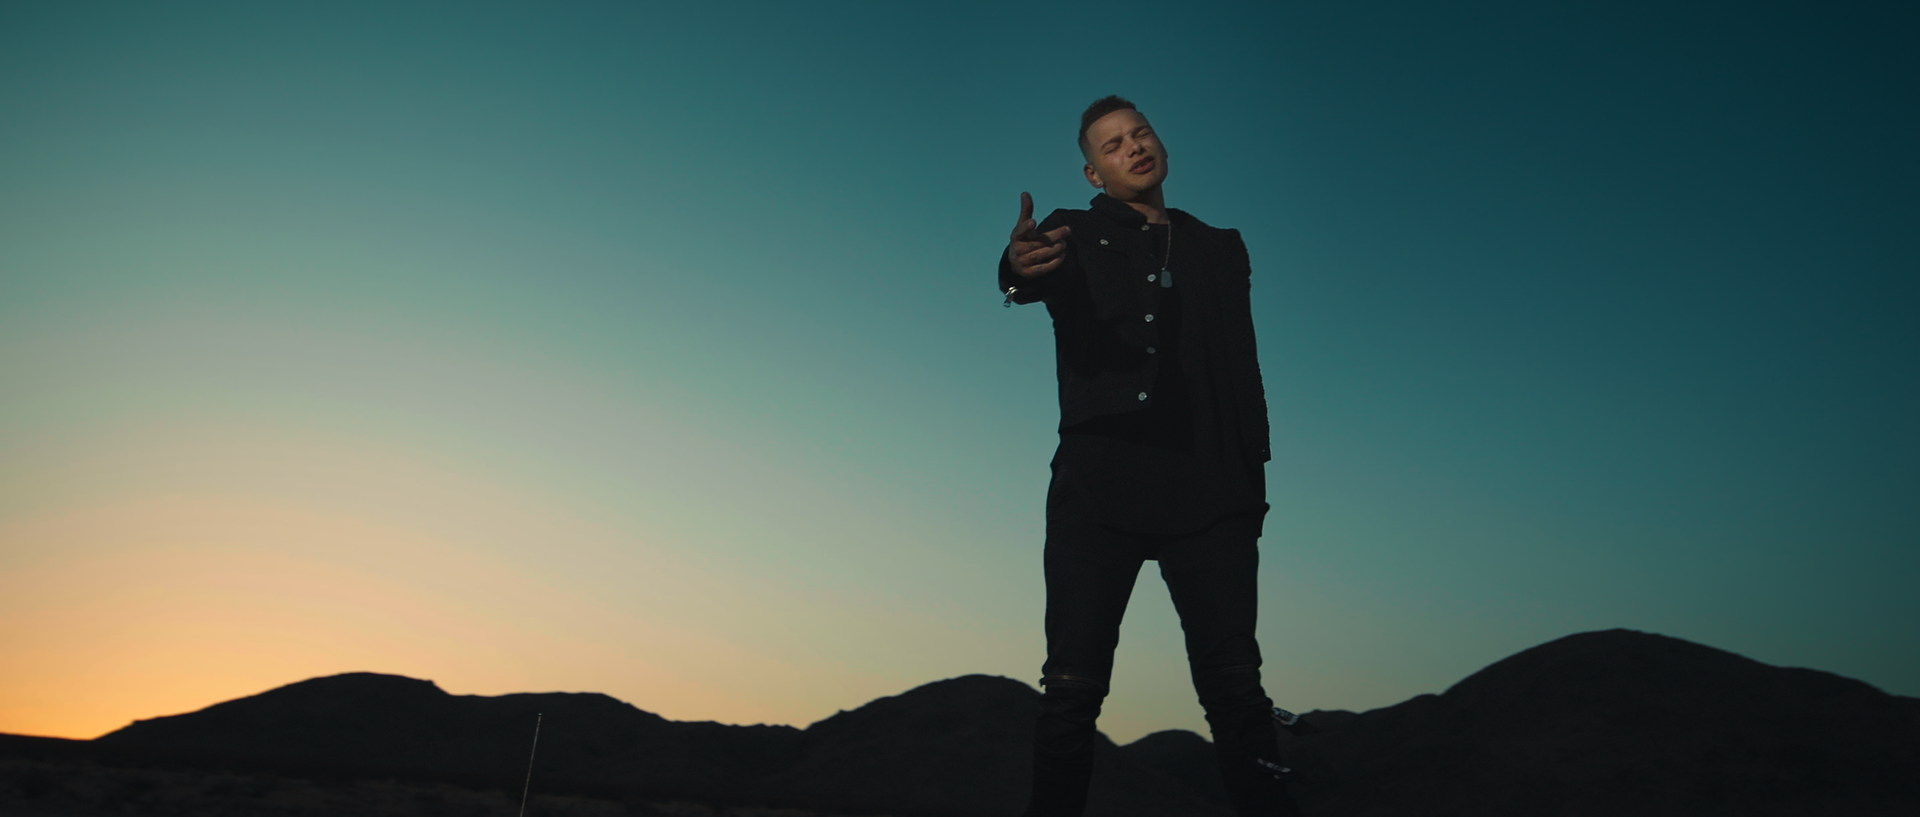 kanebrown-loseit_1.22.1.png